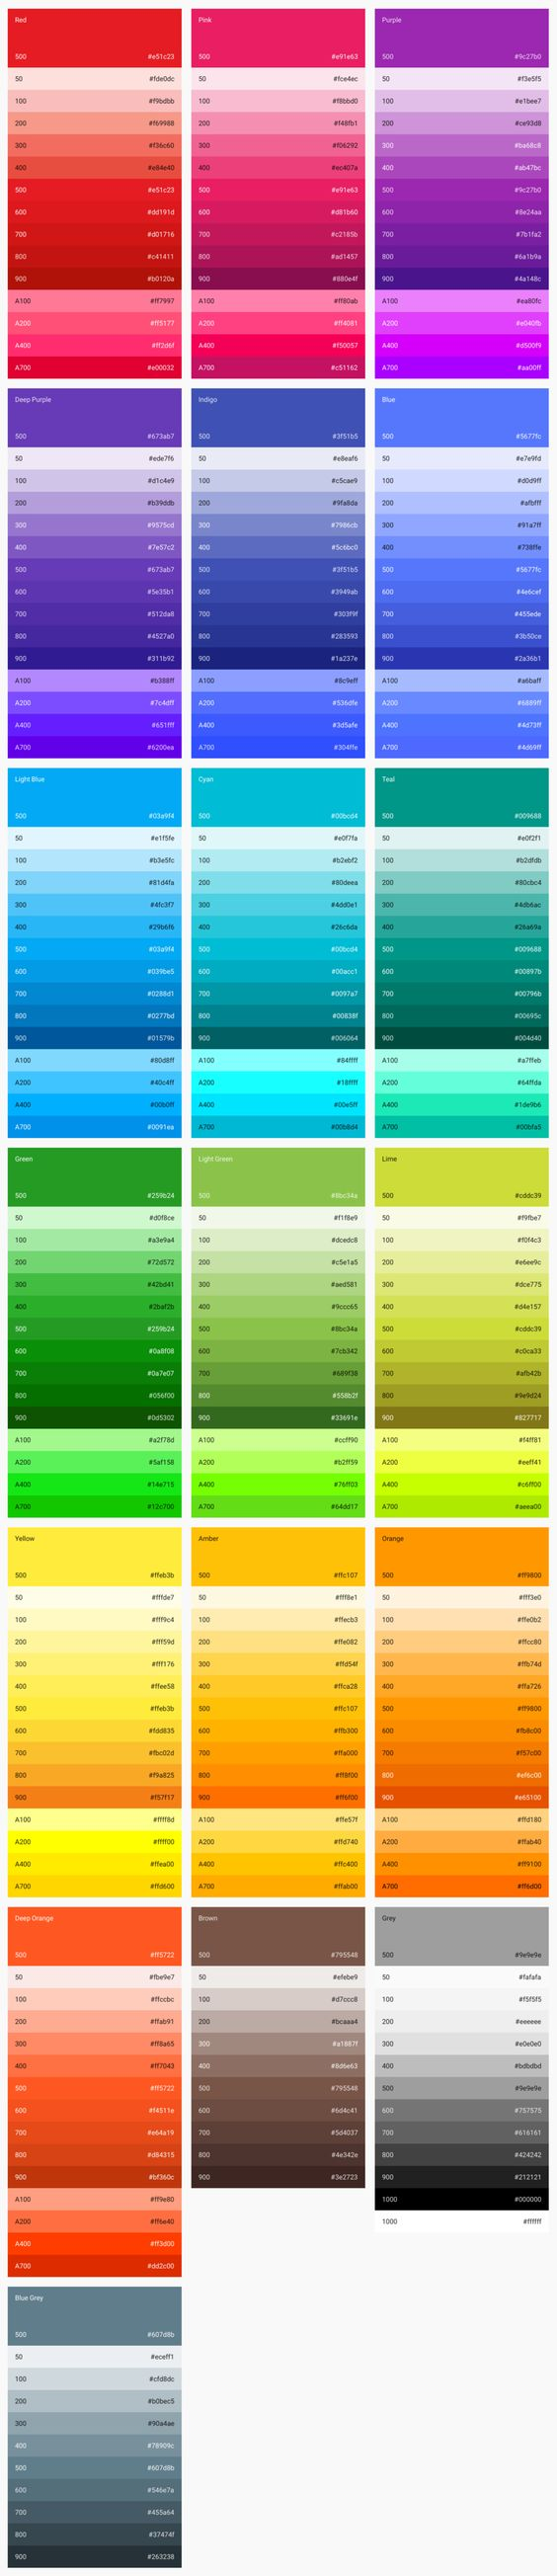 Material Design - Style - Color-UI